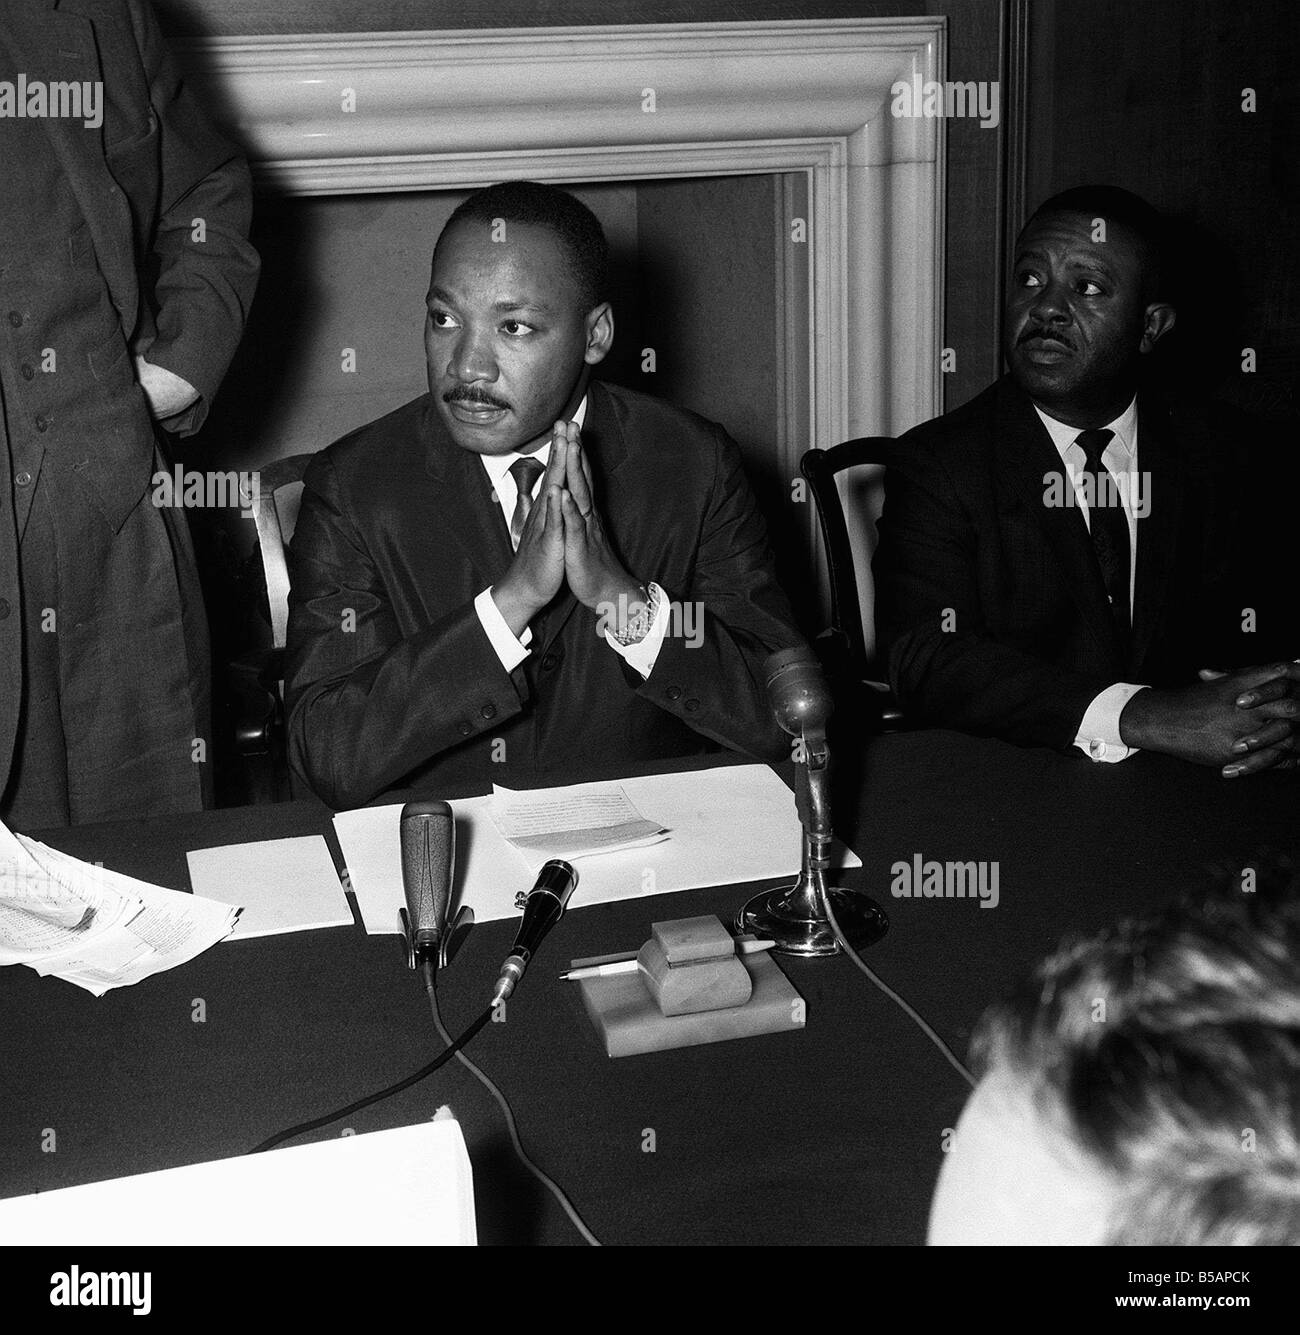 Dr Martin Luther King speaking at his press conference after sermon at St Pauls Cathed Londonr MSI LAFjan05 15th - Stock Image